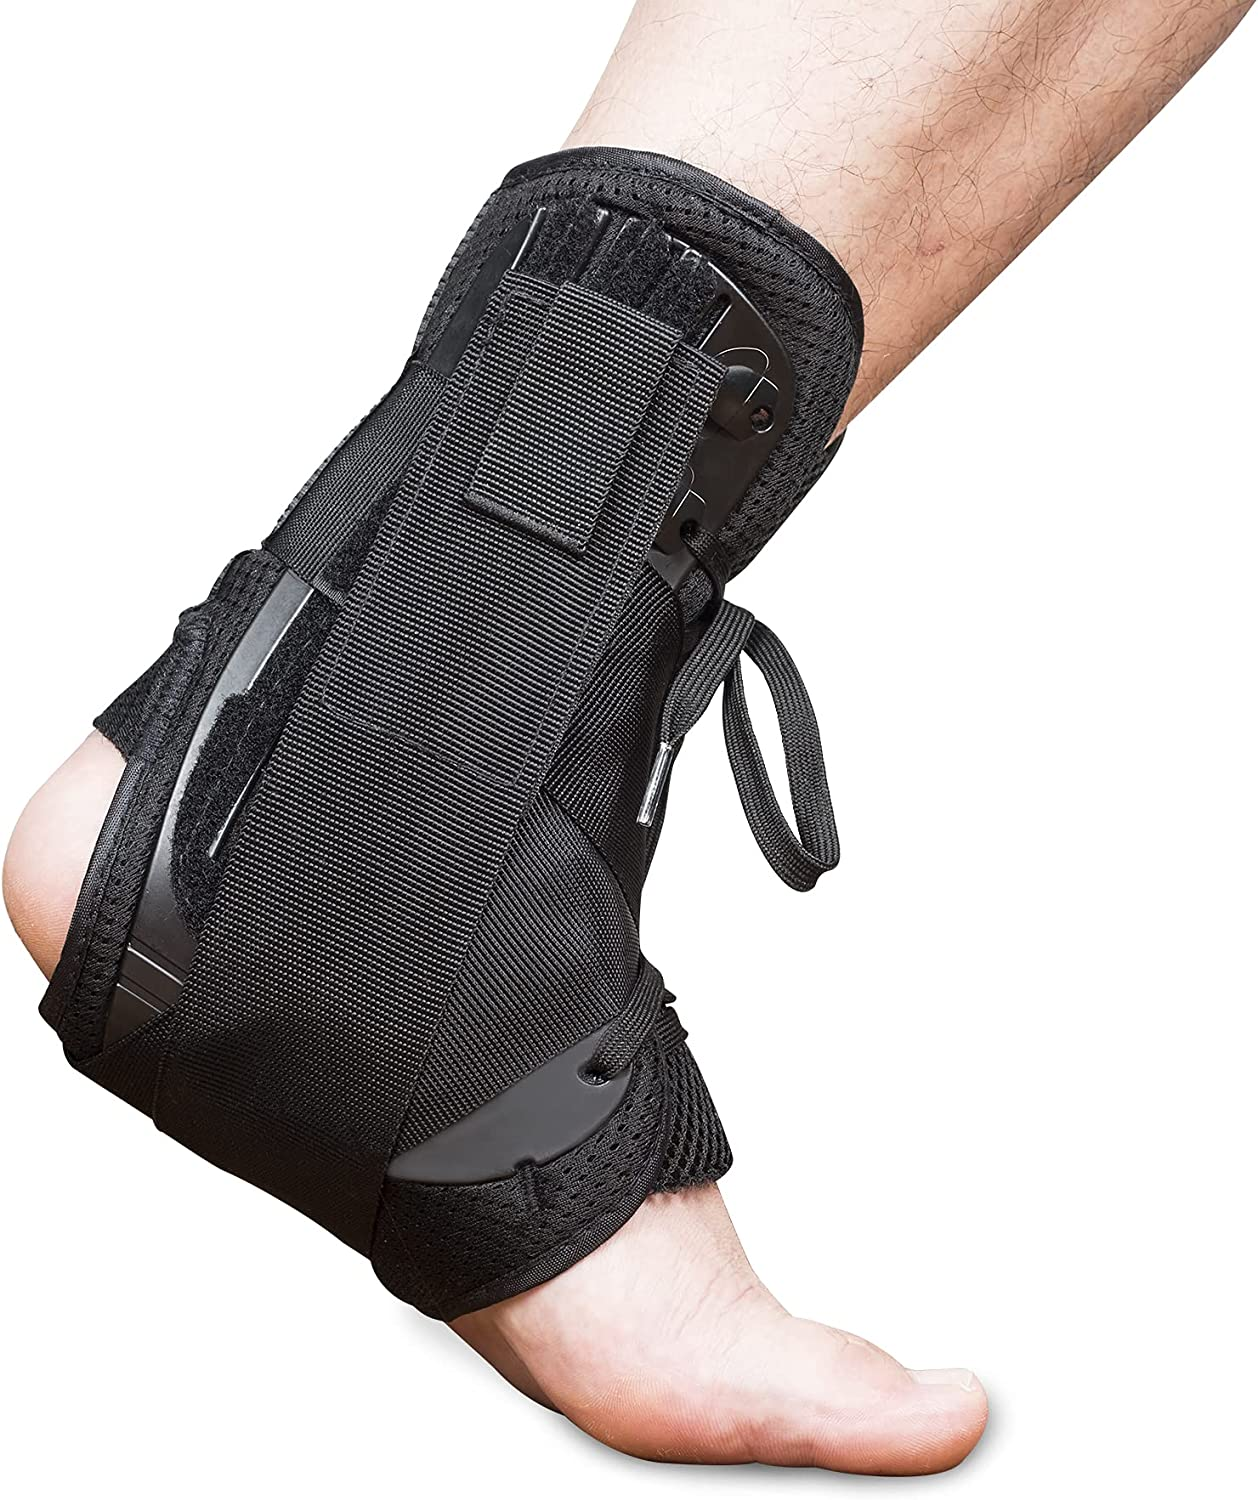 Outlet SALE New Update Ankle Brace for Women Men Braces Up Lace Super Special SALE held wit